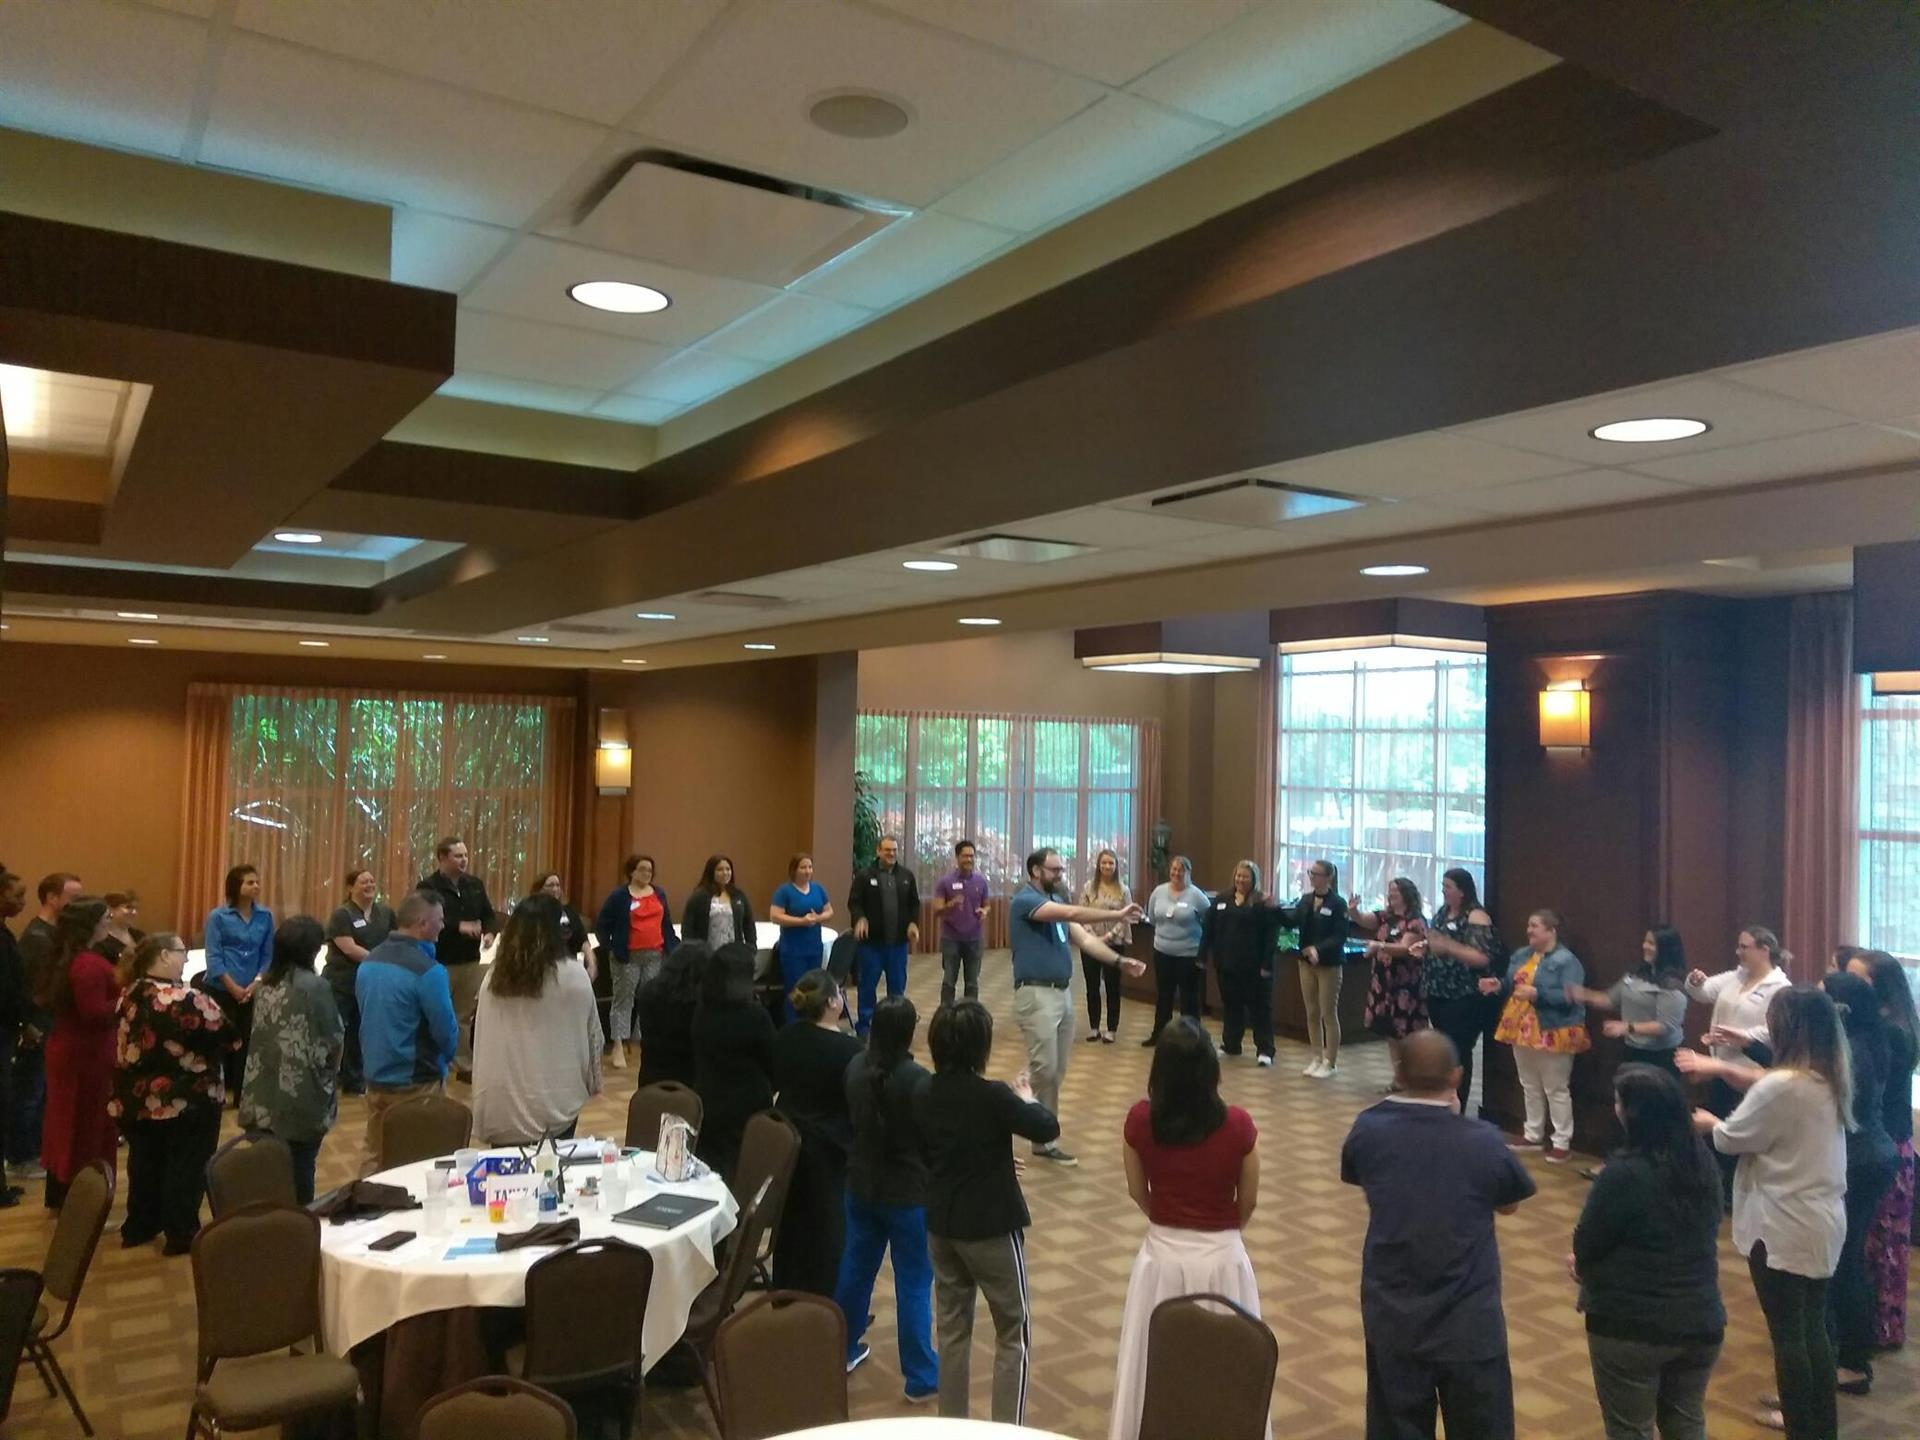 ice breaker game during a corporate event